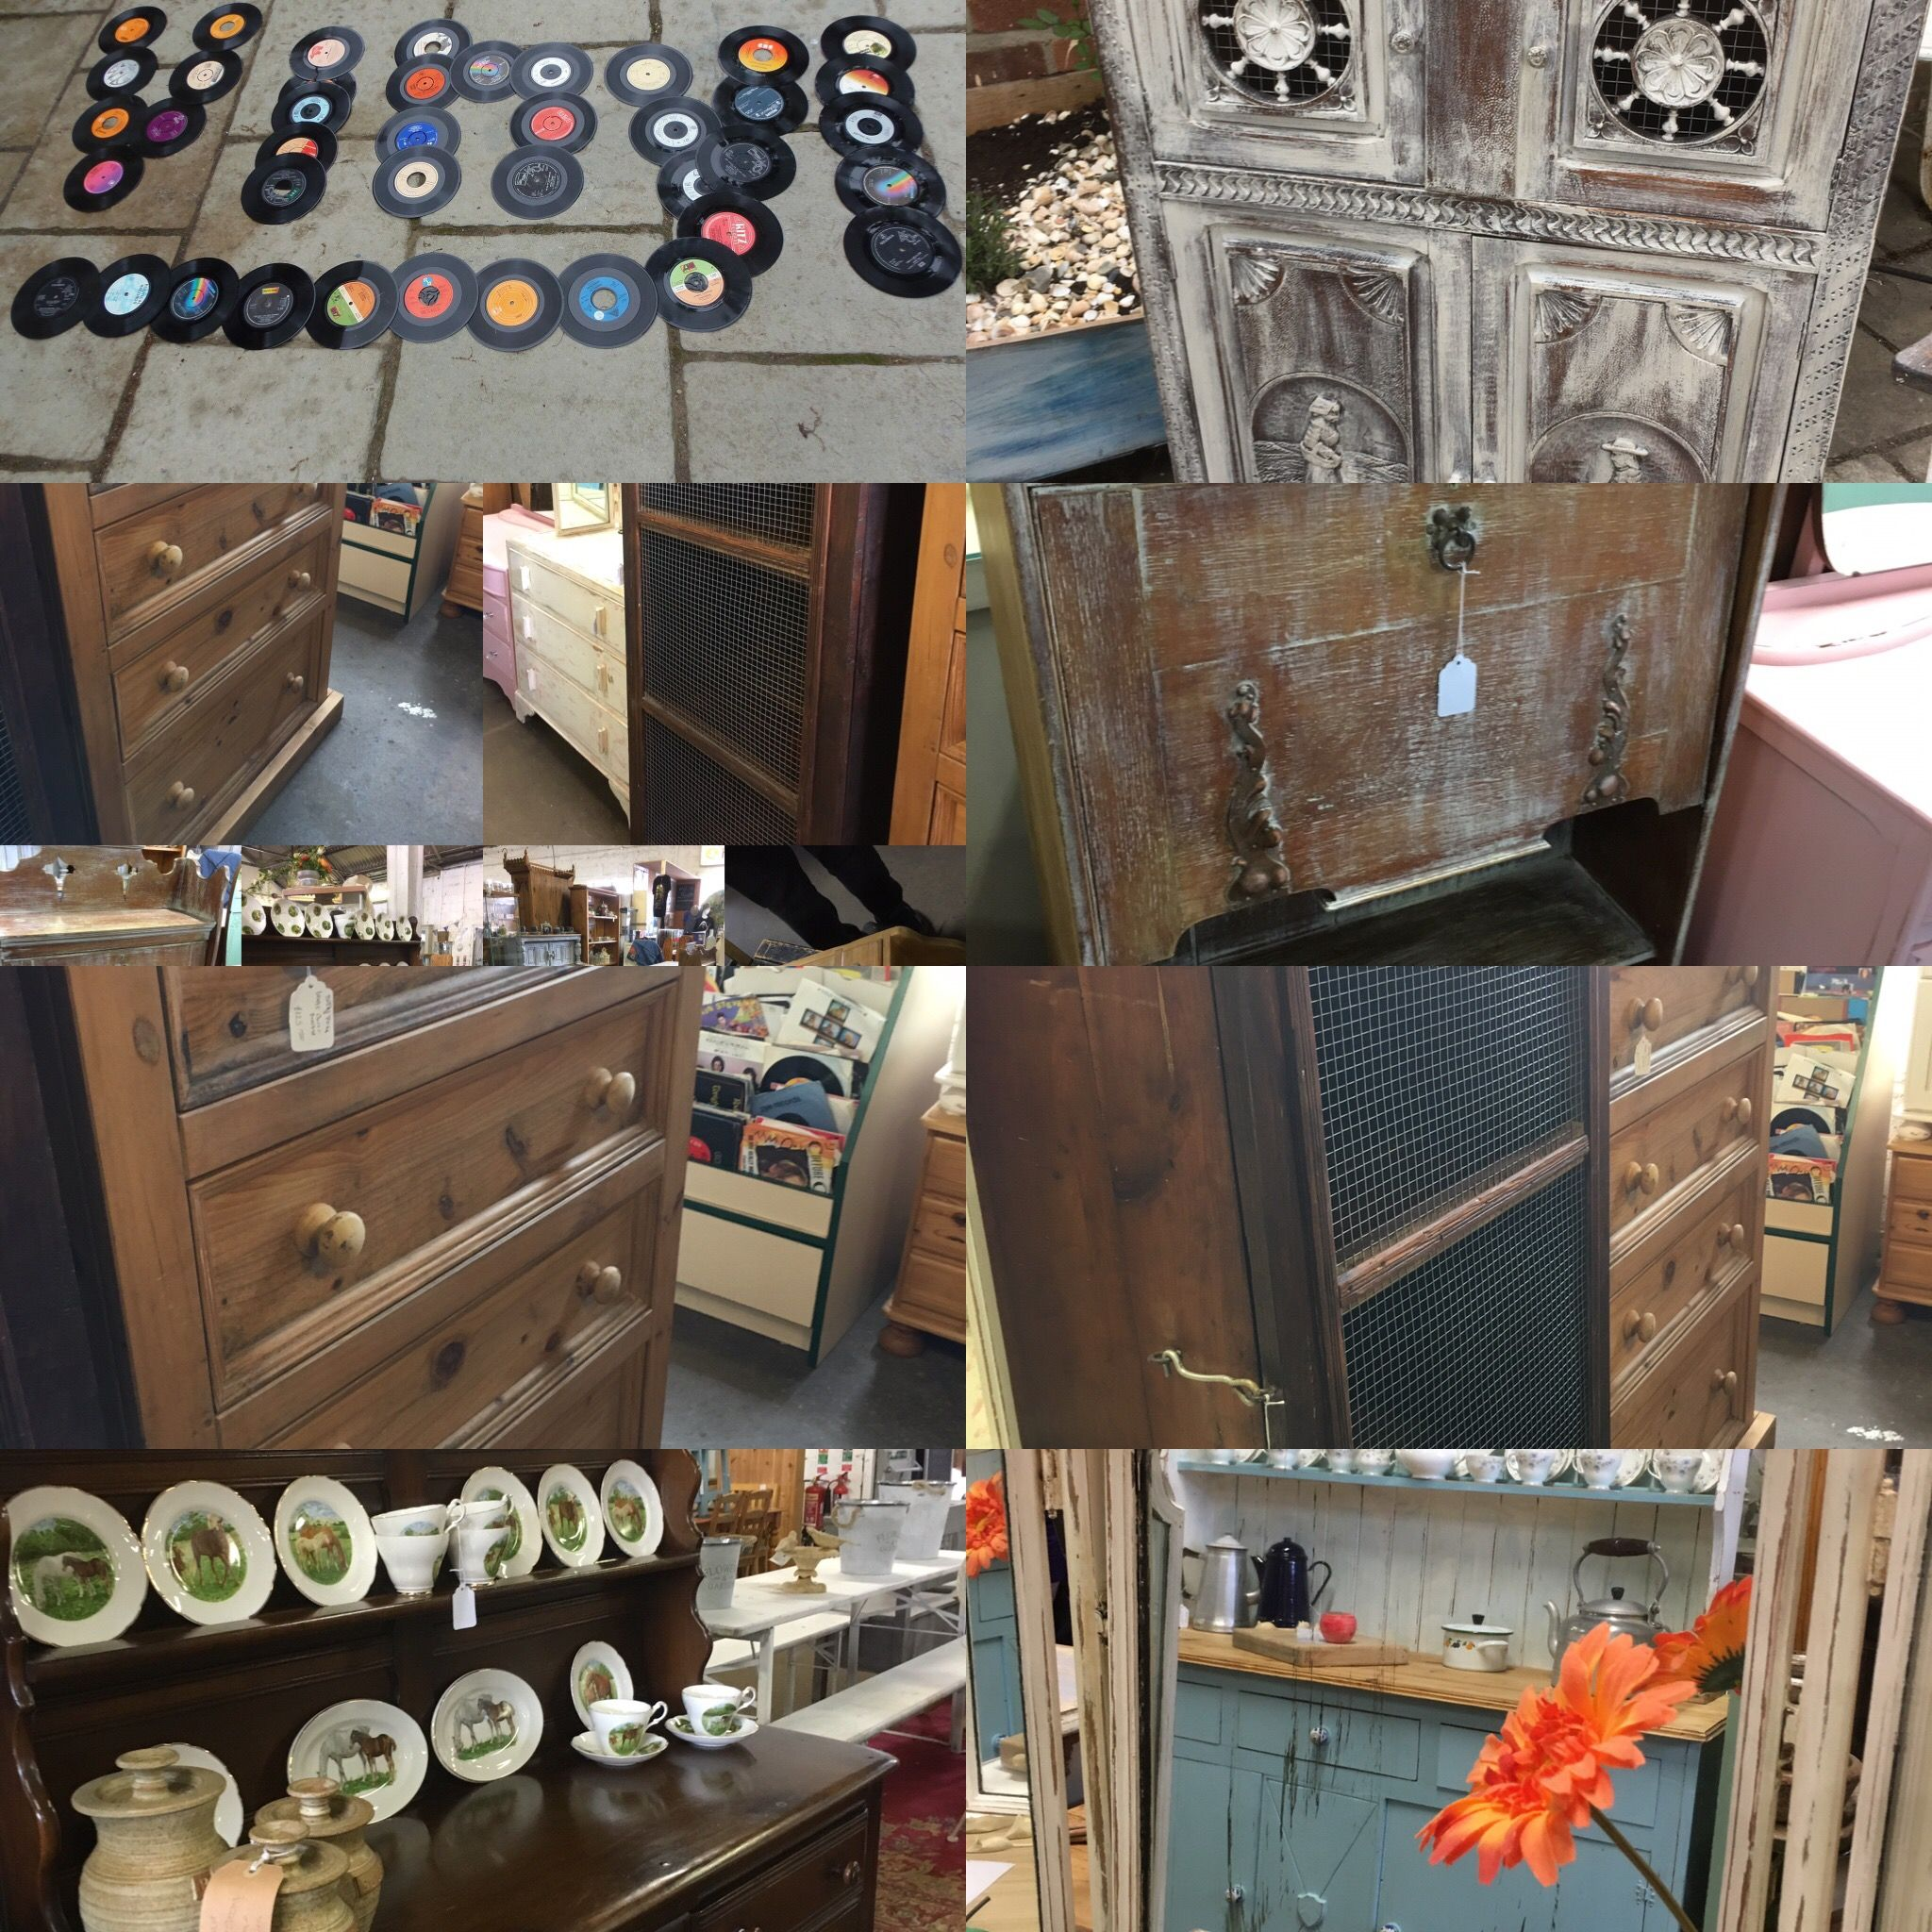 Grandads Curious Attic at Dorchester Curiosity Centre DT1 1ST vintage shop Upcycled/painted/shabby chic /vintage furniture ❤️ vintage Shopping